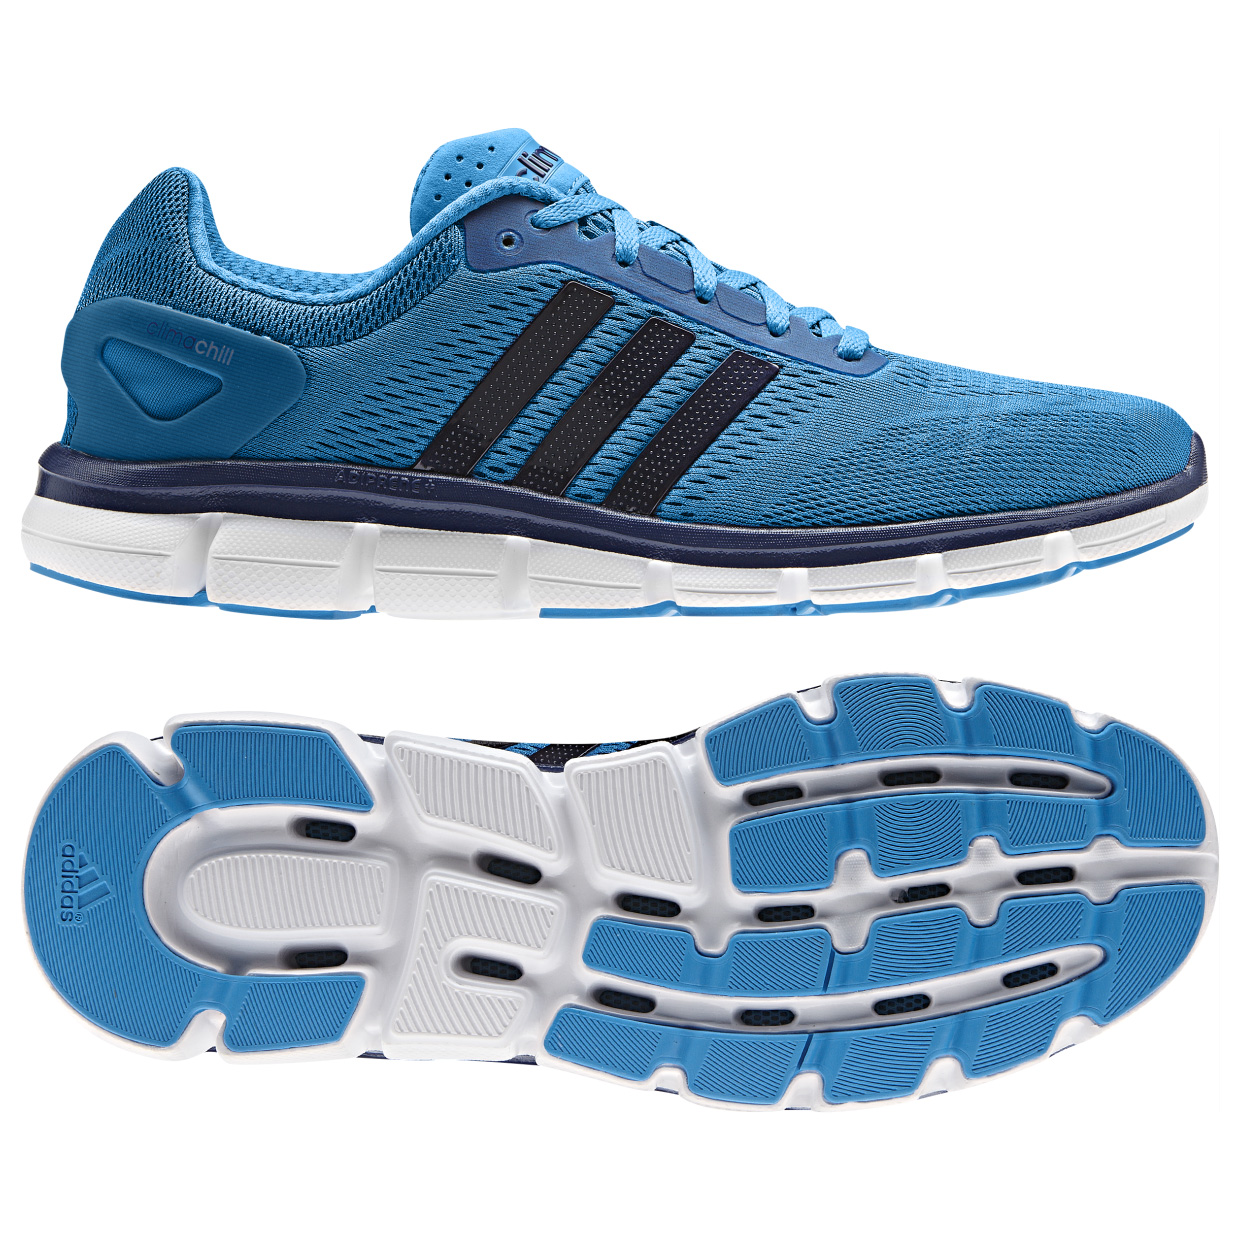 Adidas Climachill Ride Trainers Blue